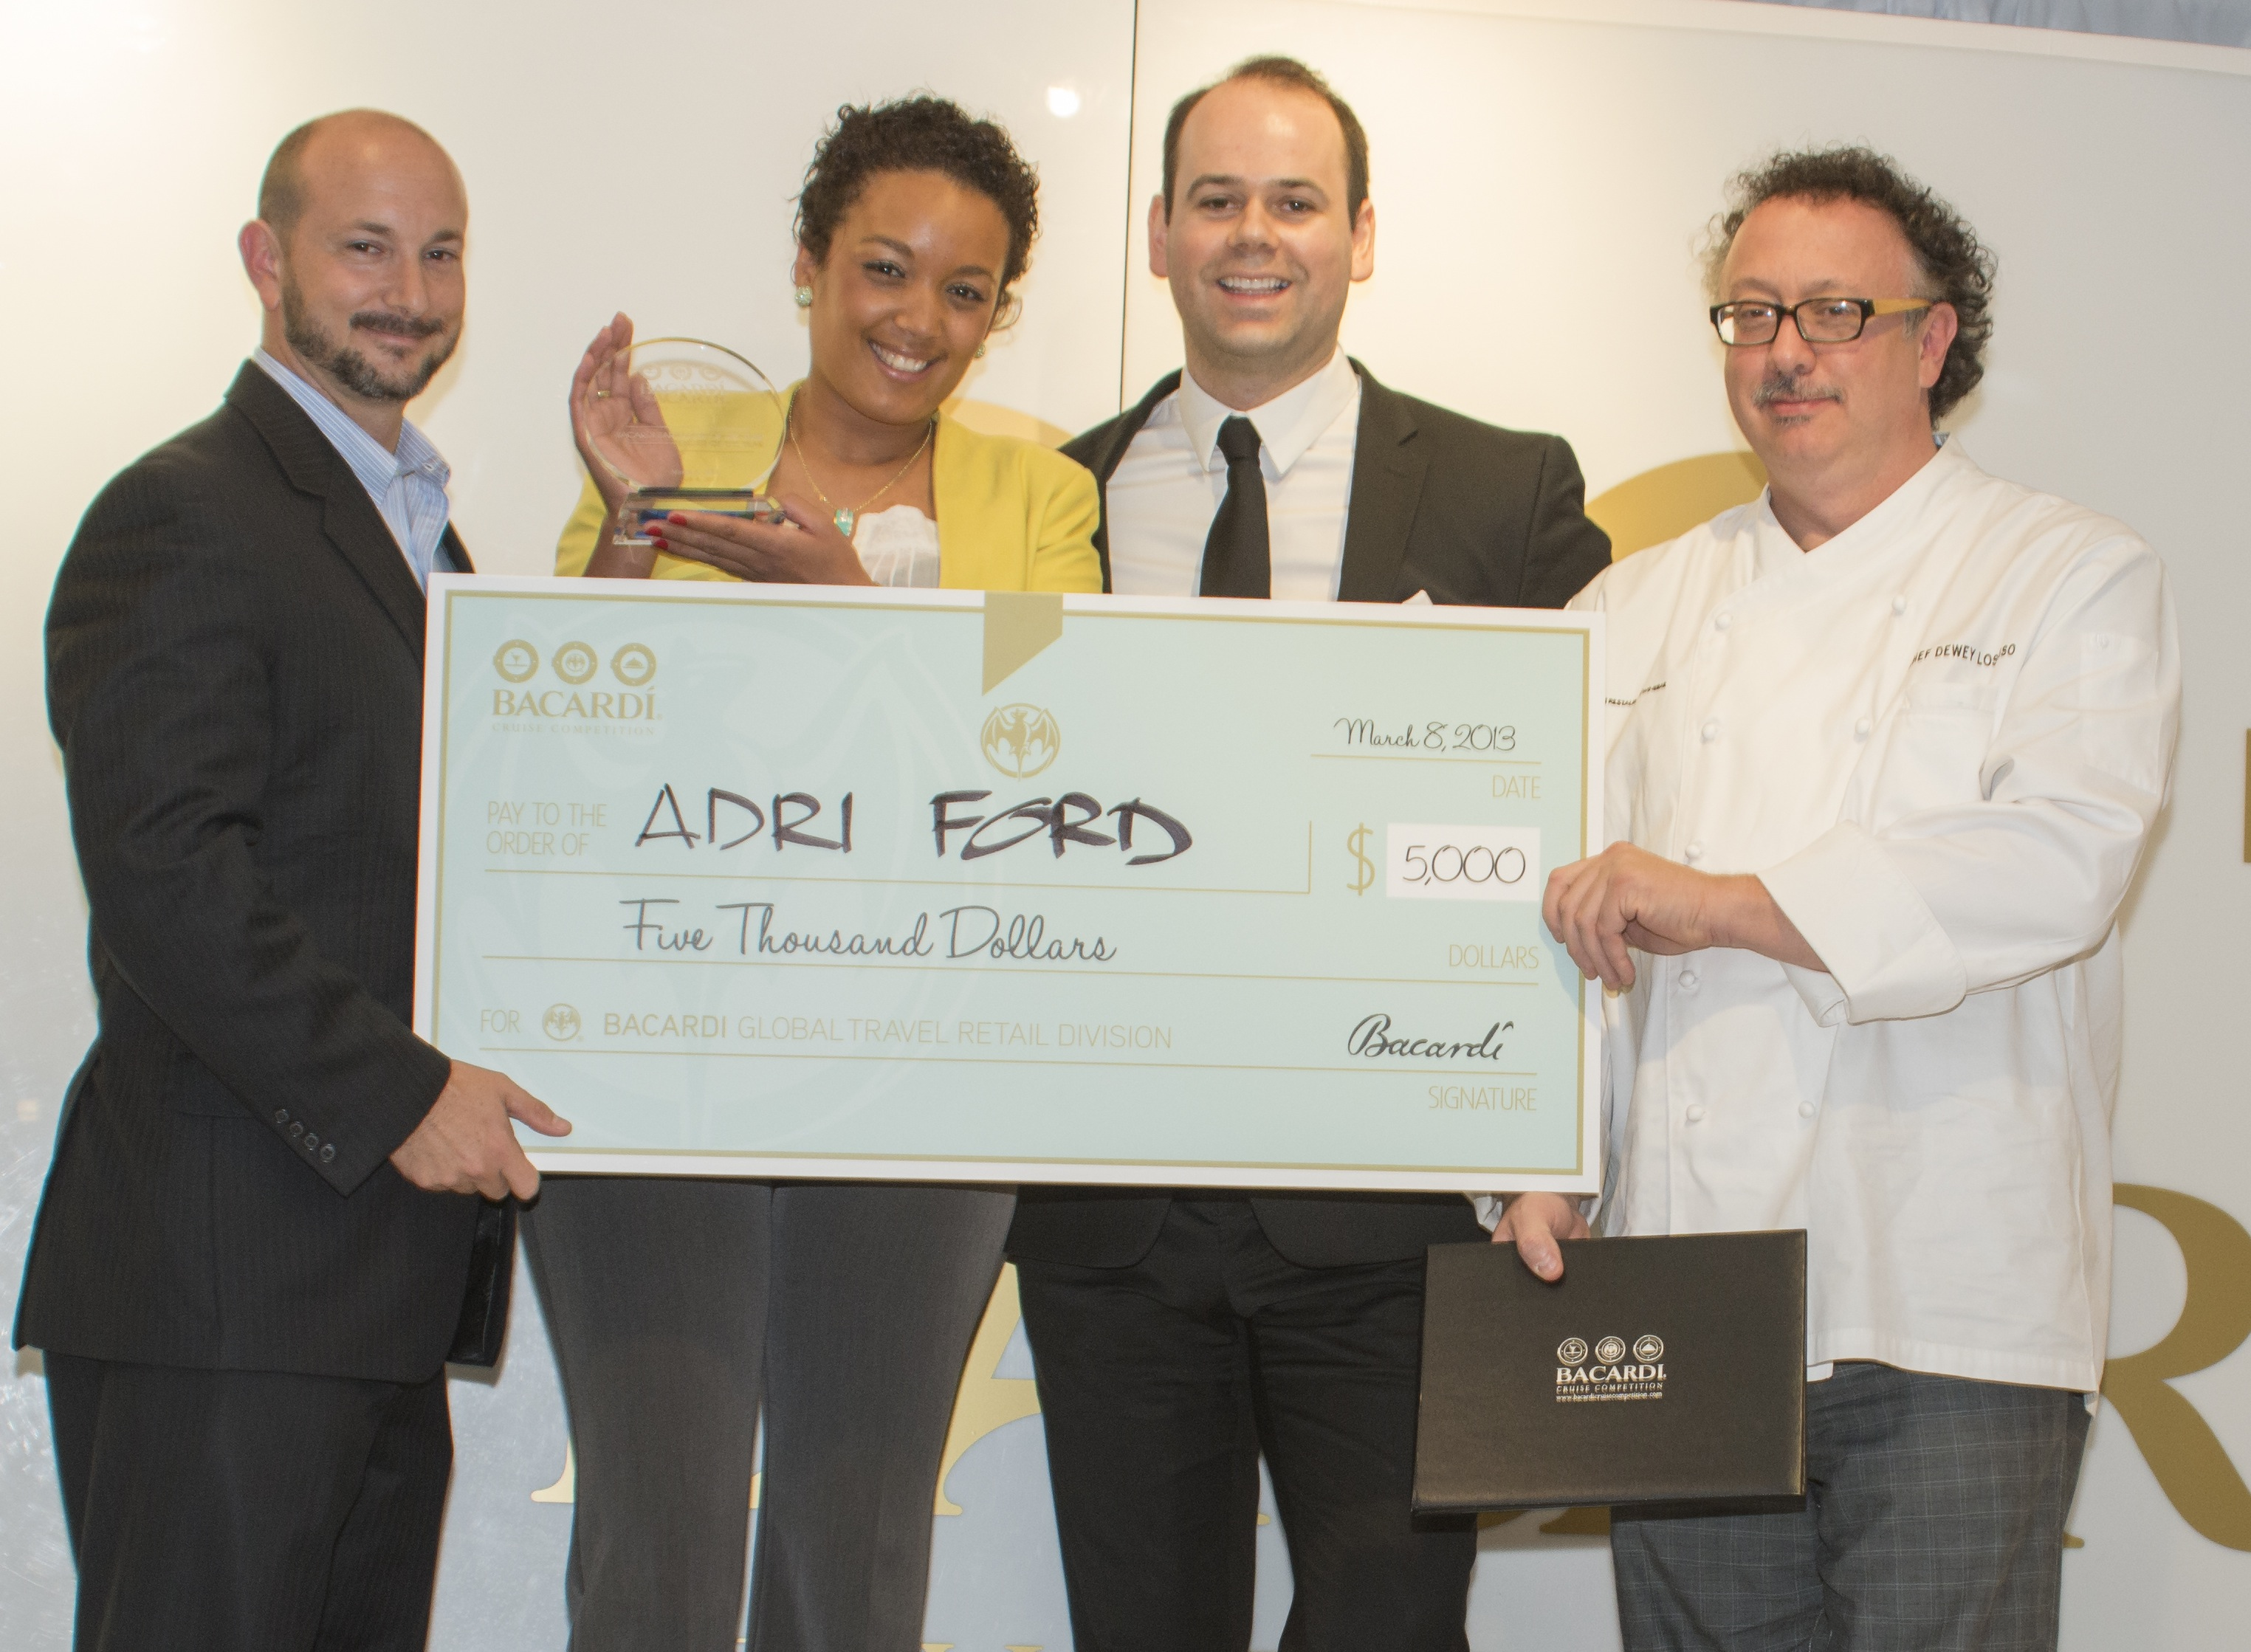 Carnival's Adri Ford Named 'Bartender of the Year' at Bacardi Cruise Competition For Second Year in a Row